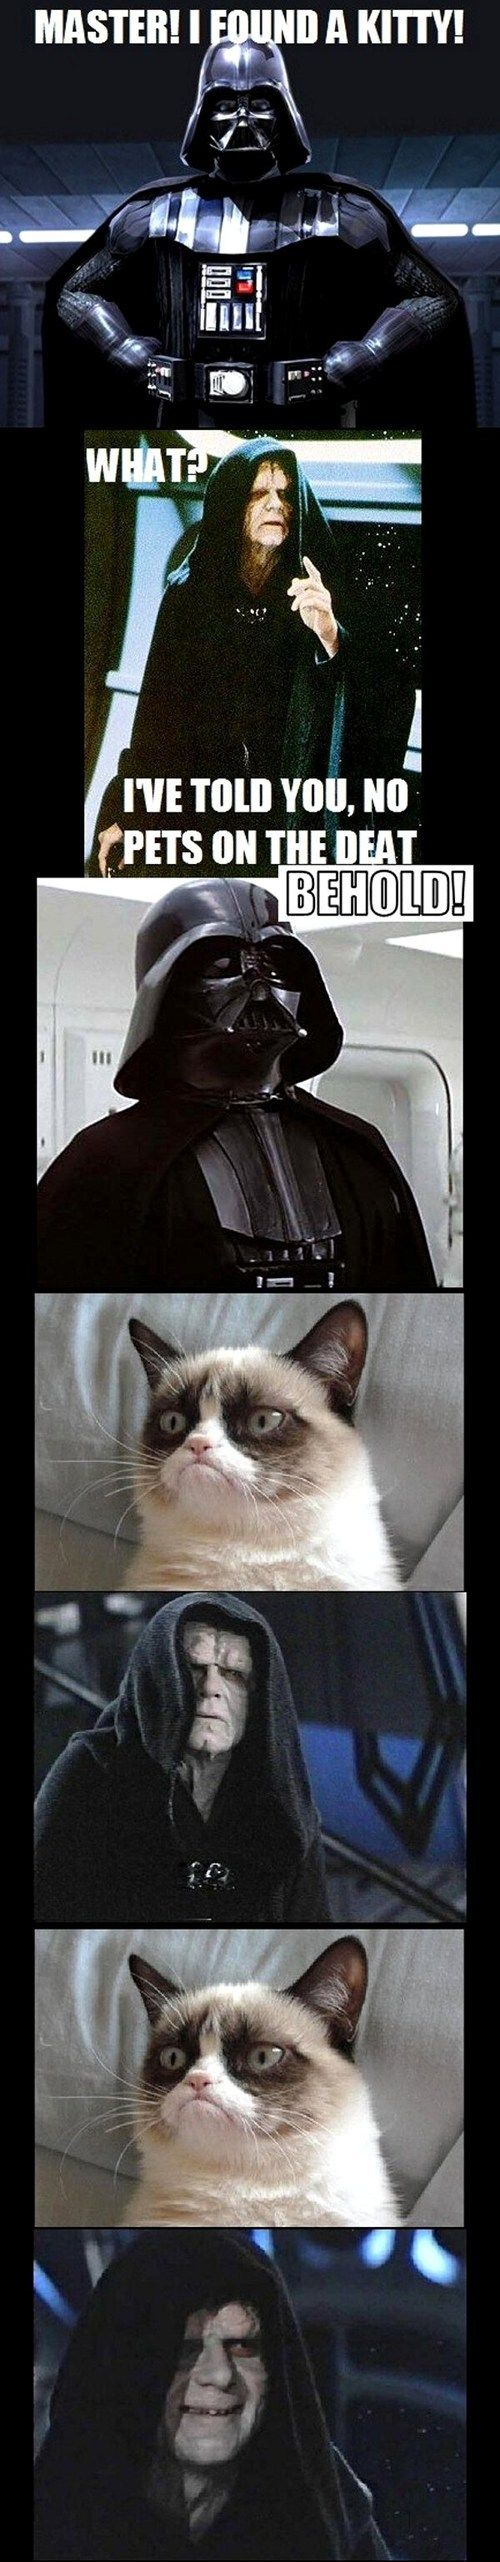 Grumpy Cat Joins the Dark Side #starwars #grumpycat #LOL